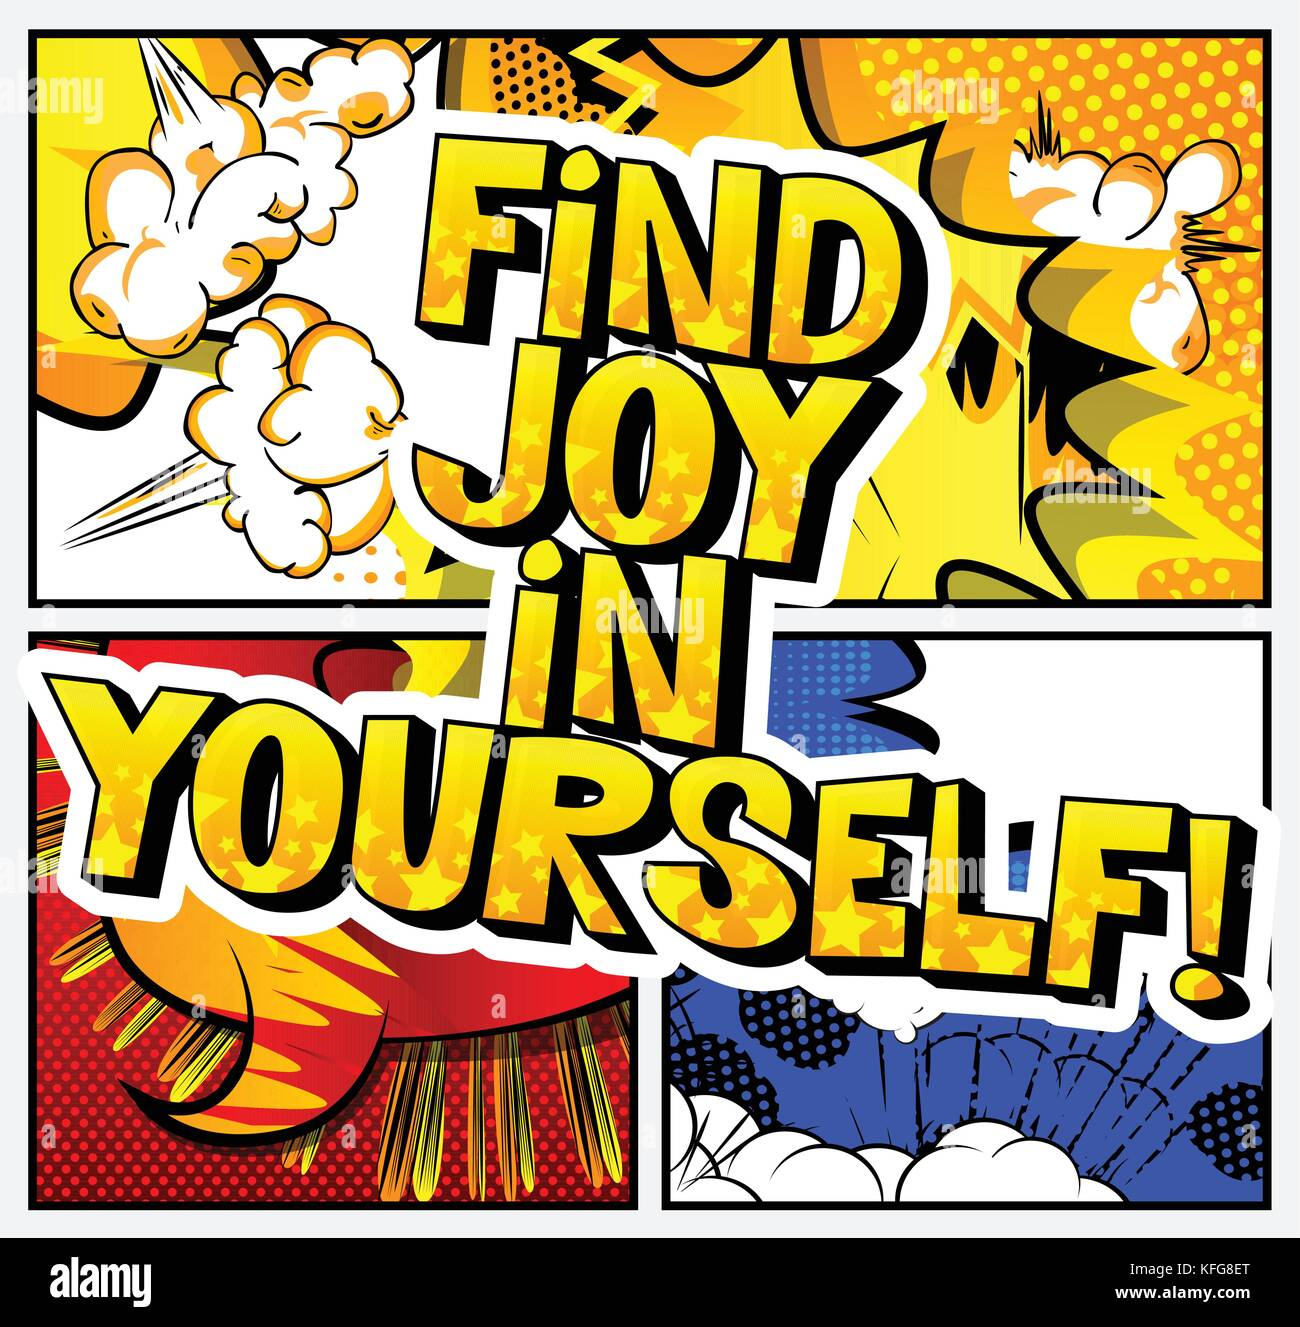 Find joy in yourself! Vector illustrated comic book style design. Inspirational, motivational quote. Stock Vector